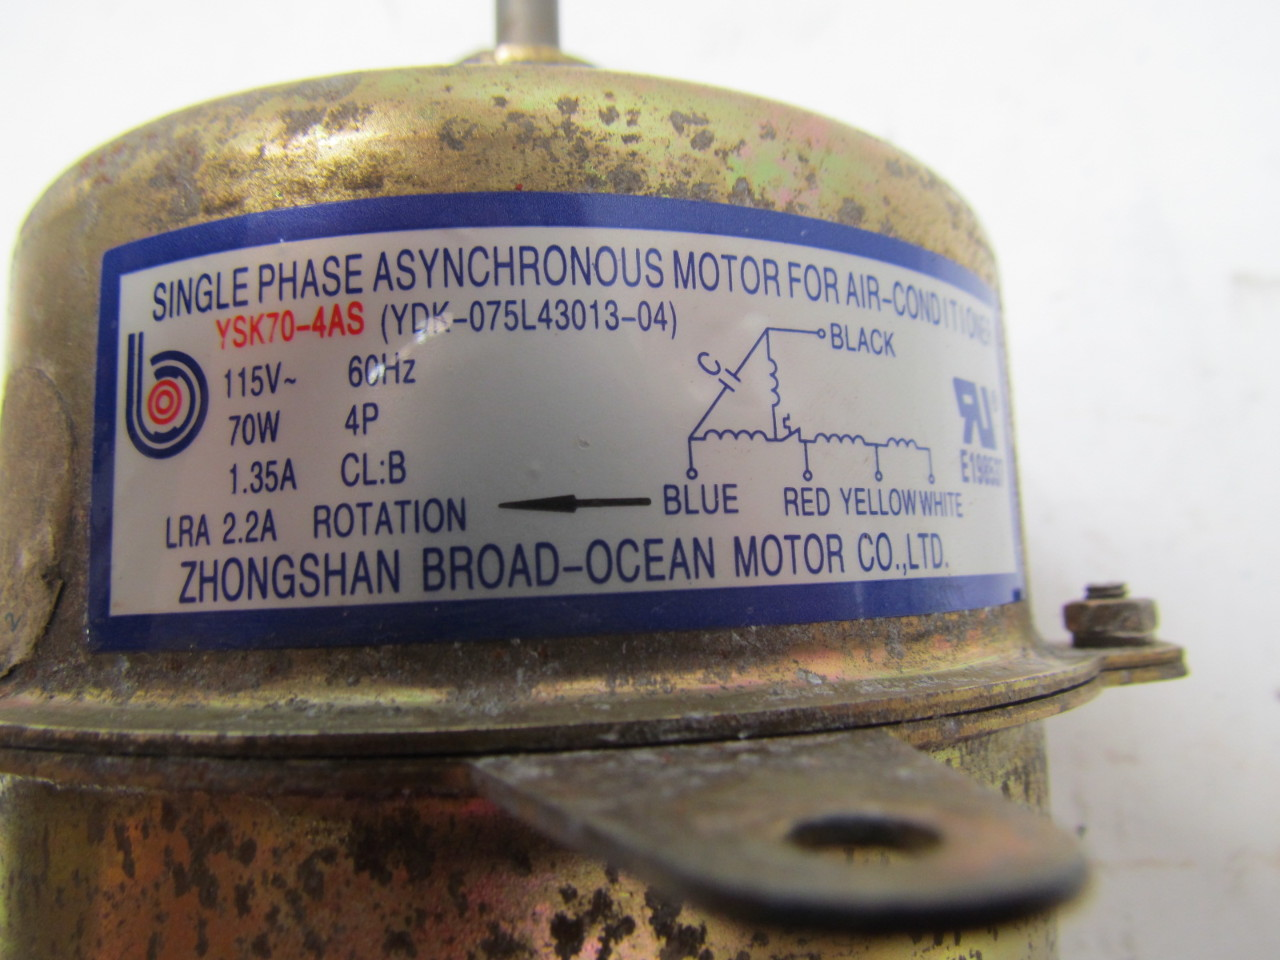 Zhongshan broad ocean ysk70 4as 1ph asynchronous motor for Broad ocean motor co